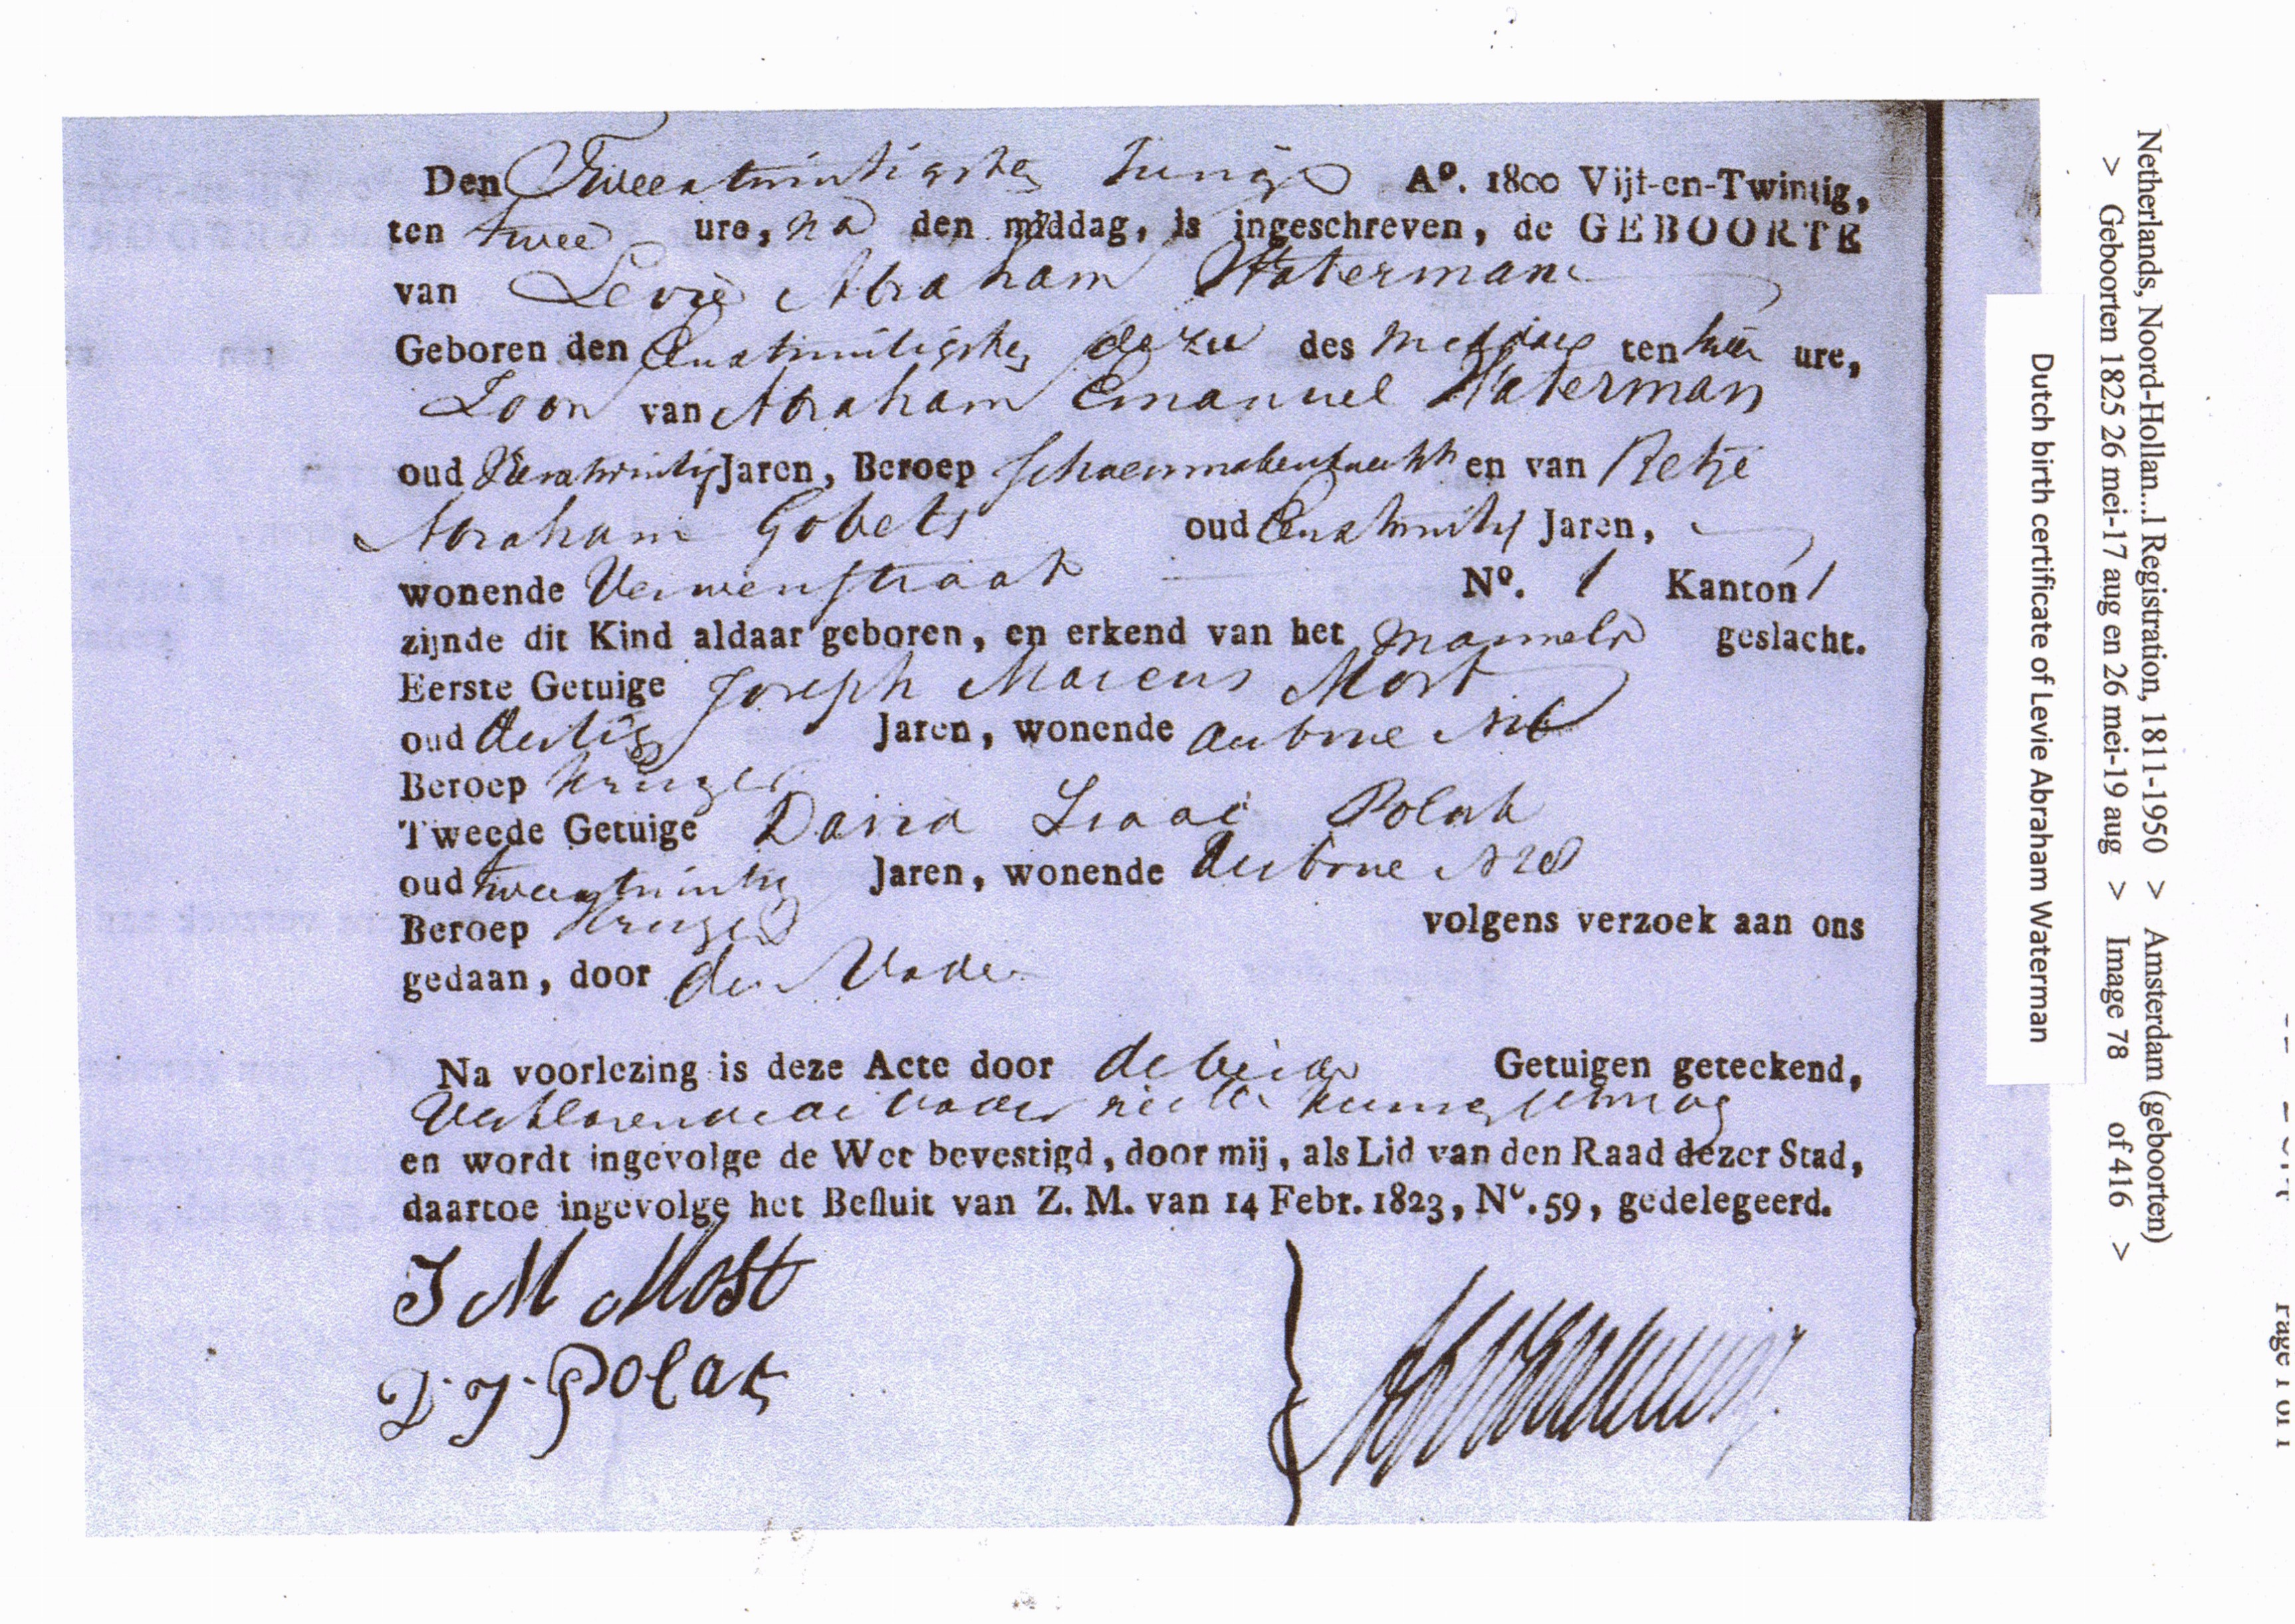 Waterman dutch family waterman levie abraham waterman birth certificate 1825 1betcityfo Image collections